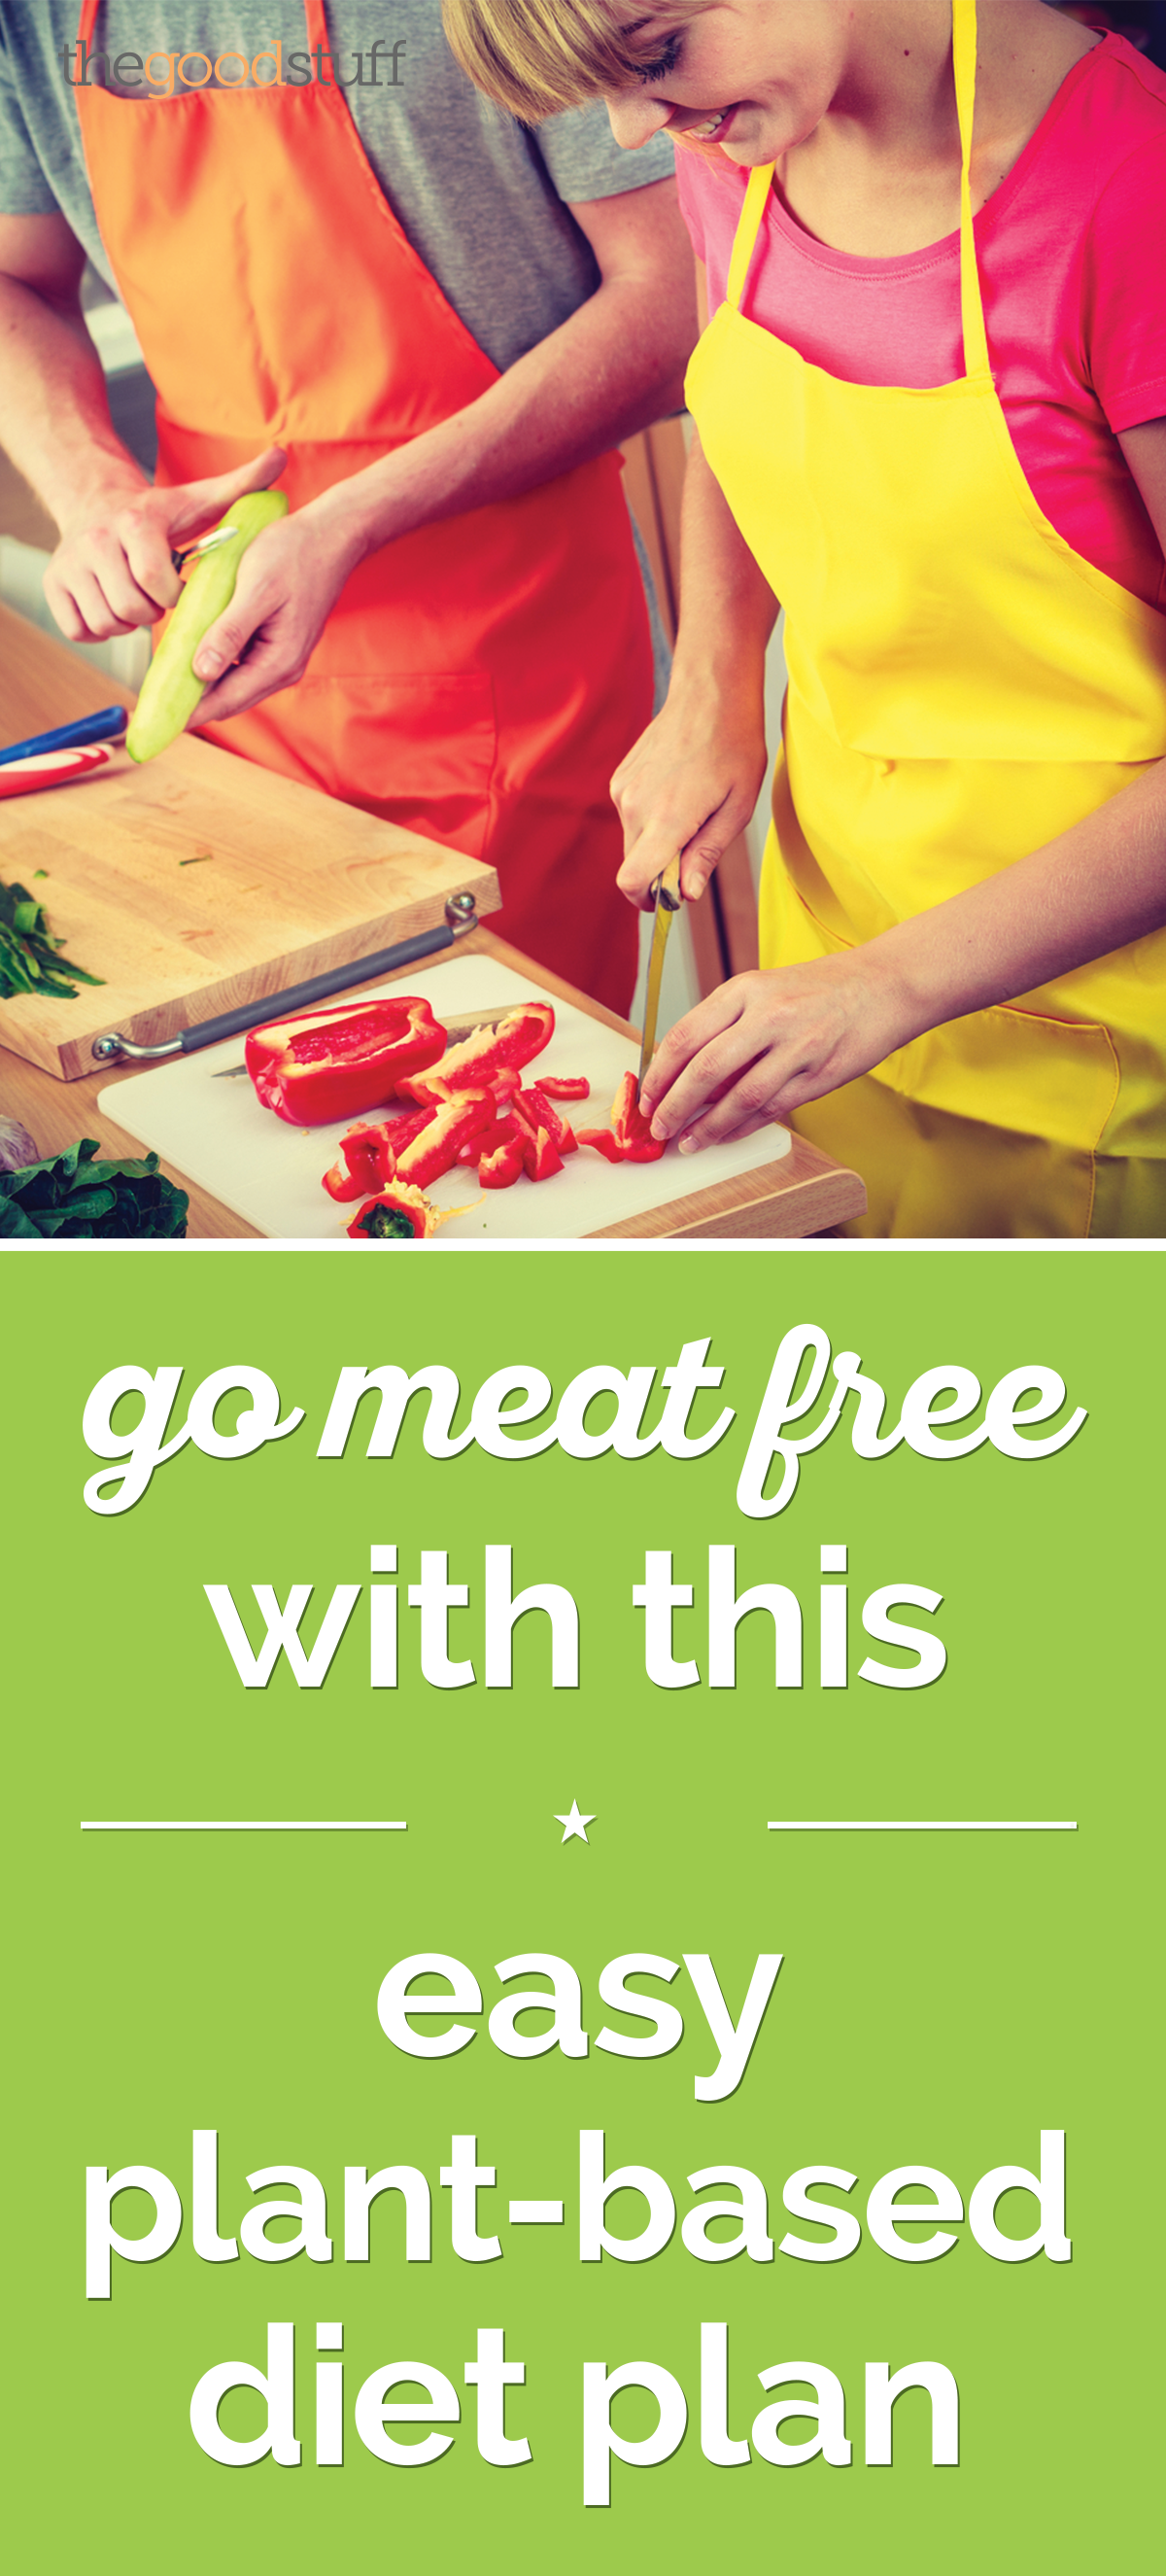 Go Meat-Free With This Easy Plant-Based Diet Plan | the good stuff